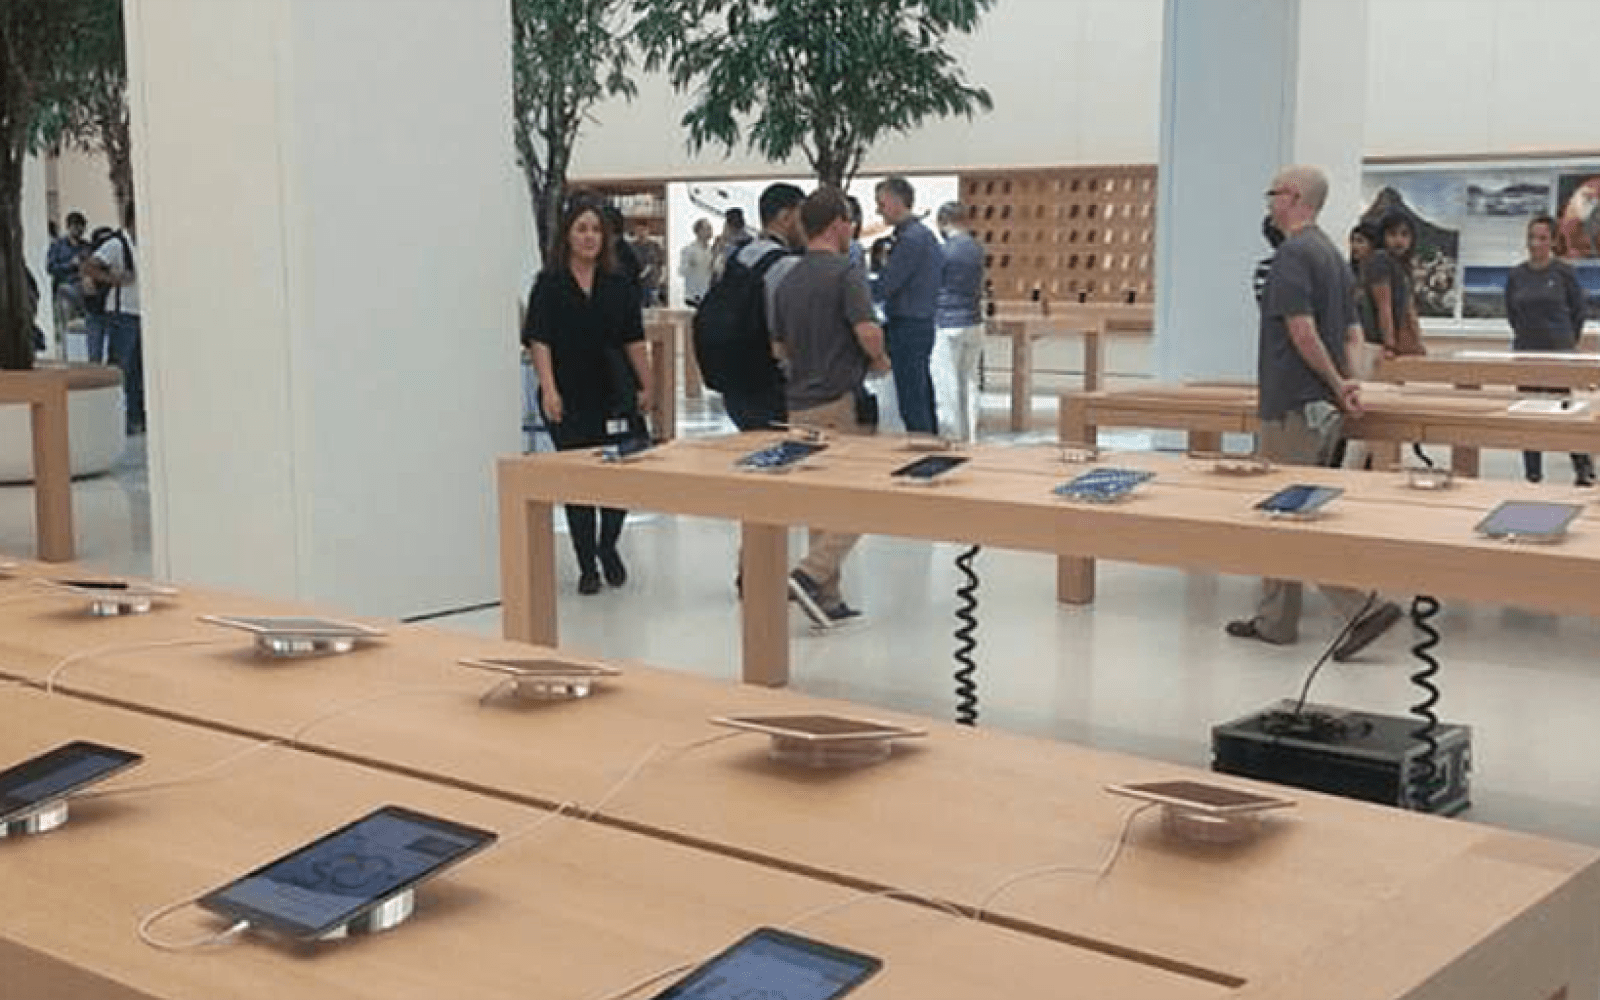 A look inside what's reported to be the world's largest Apple Store, in Dubai (Video & photo gallery)